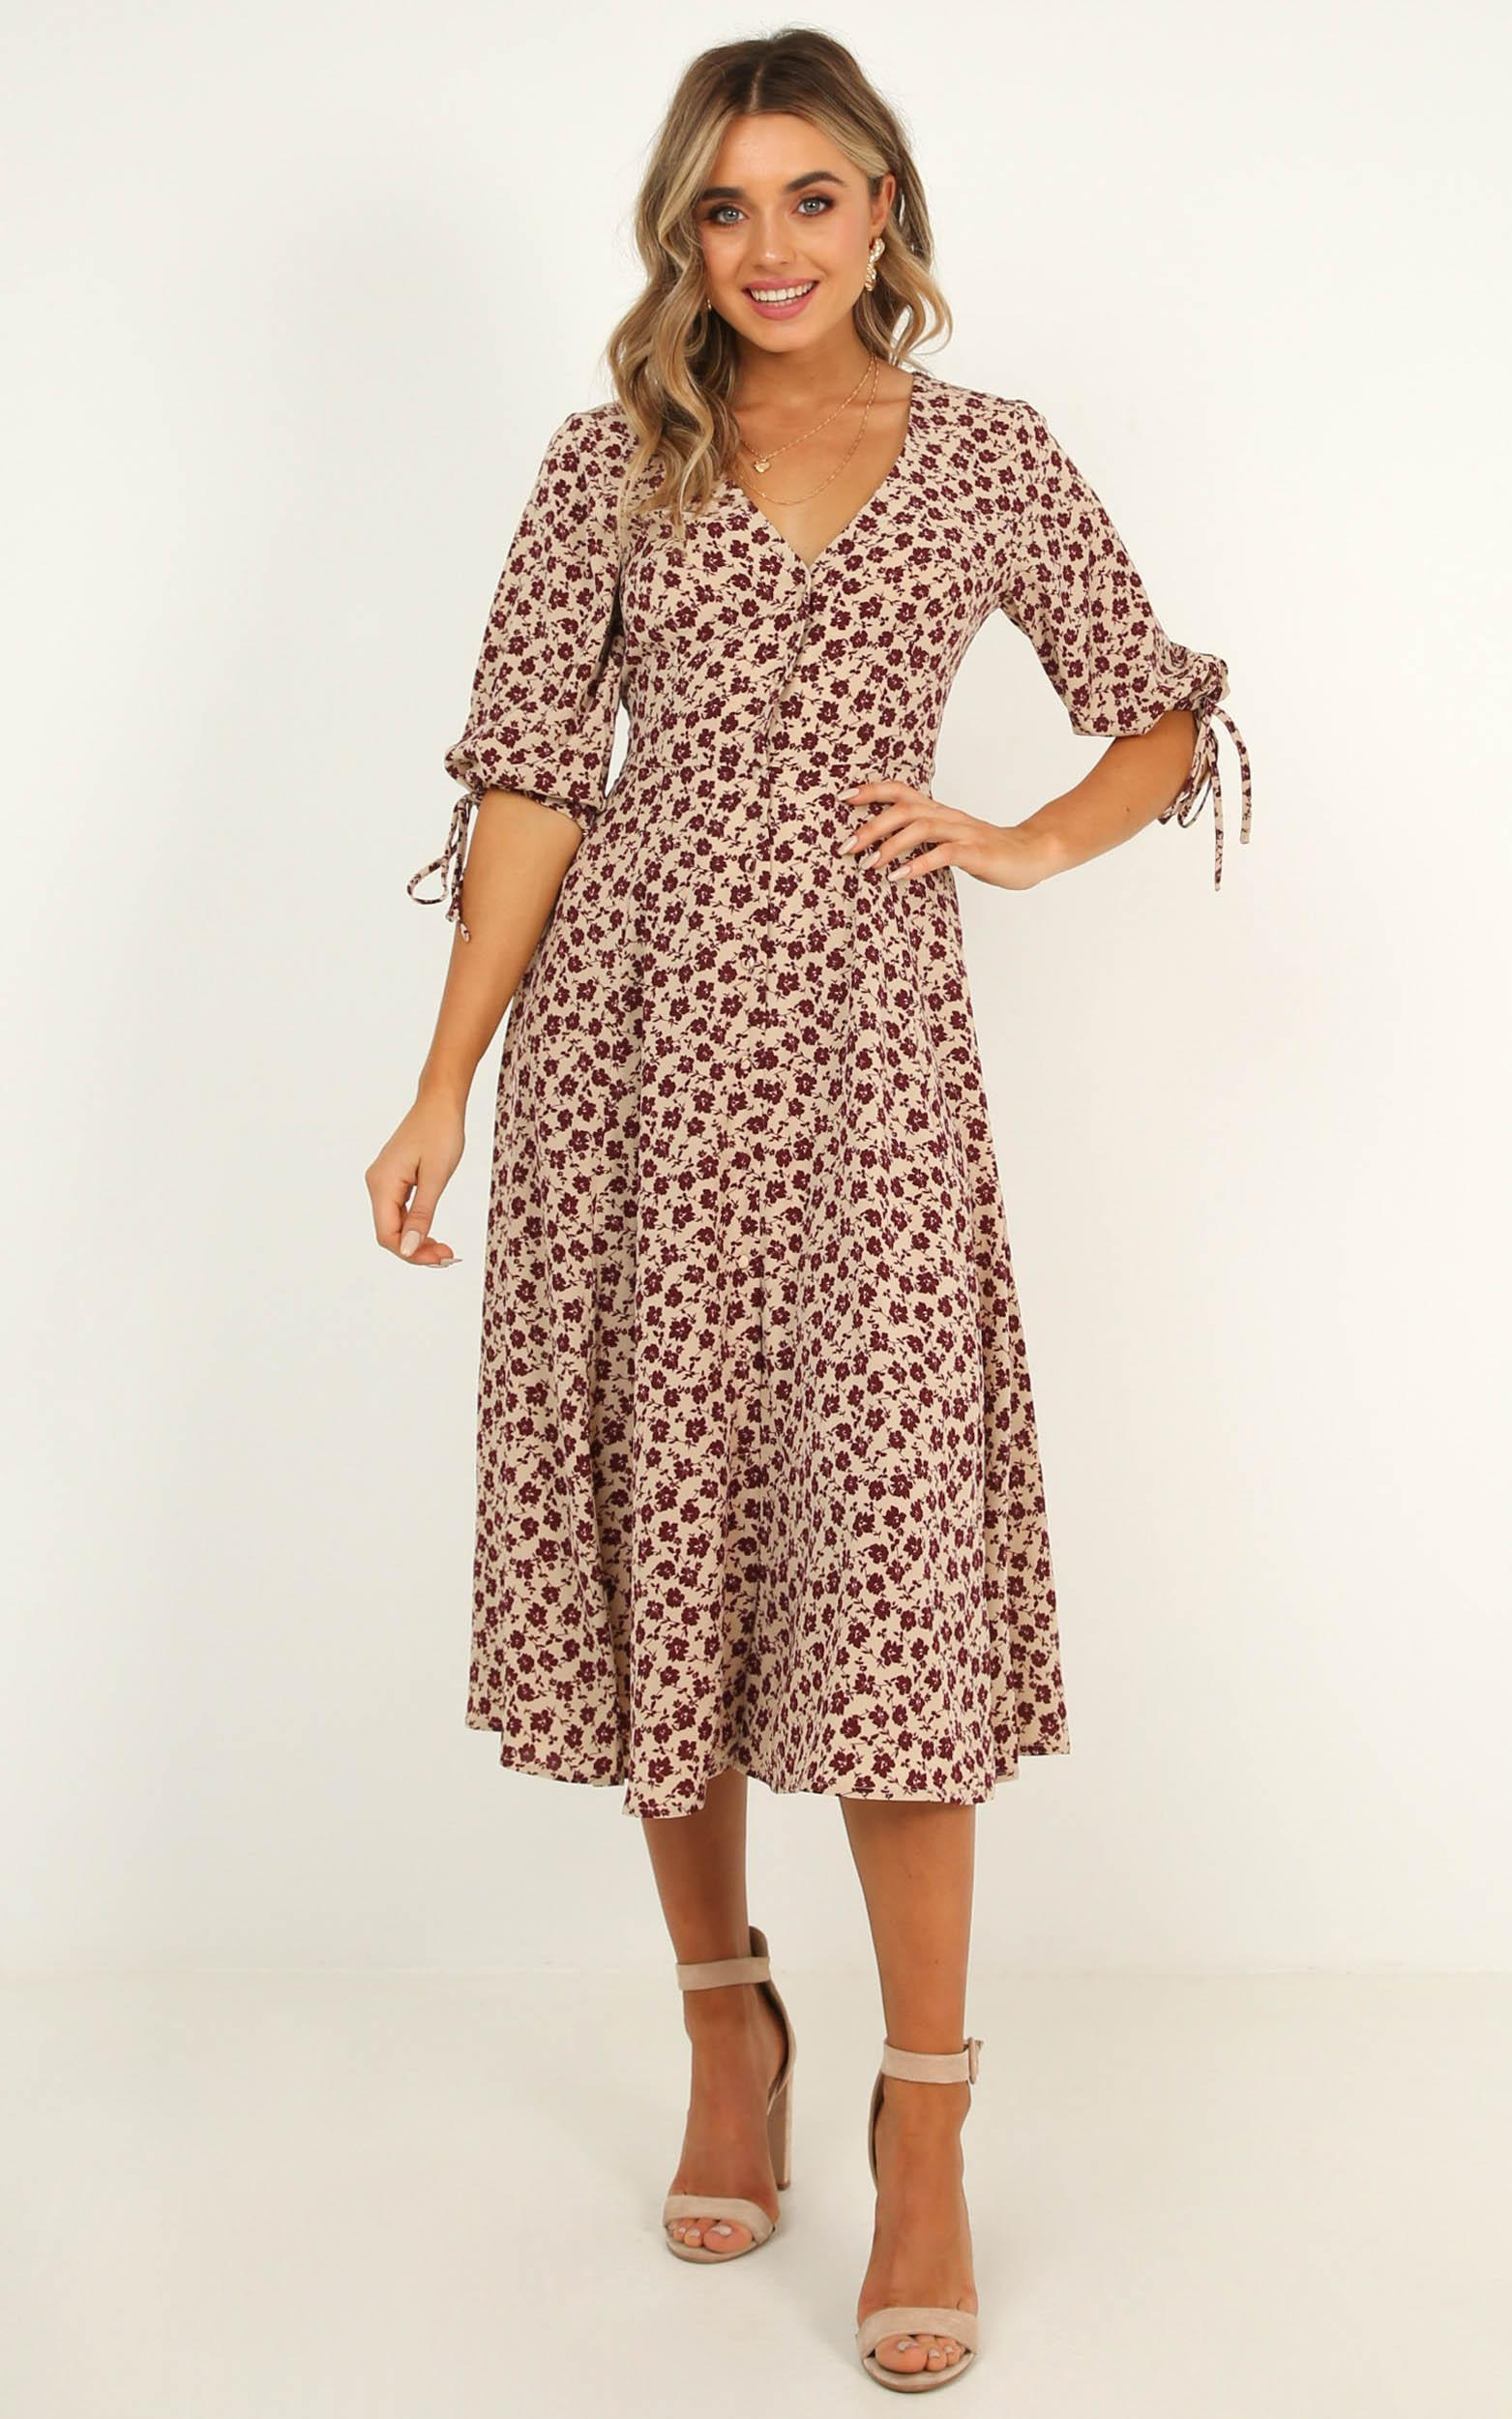 Tonal Feel Dress in burgundy floral - 20 (XXXXL), Wine, hi-res image number null